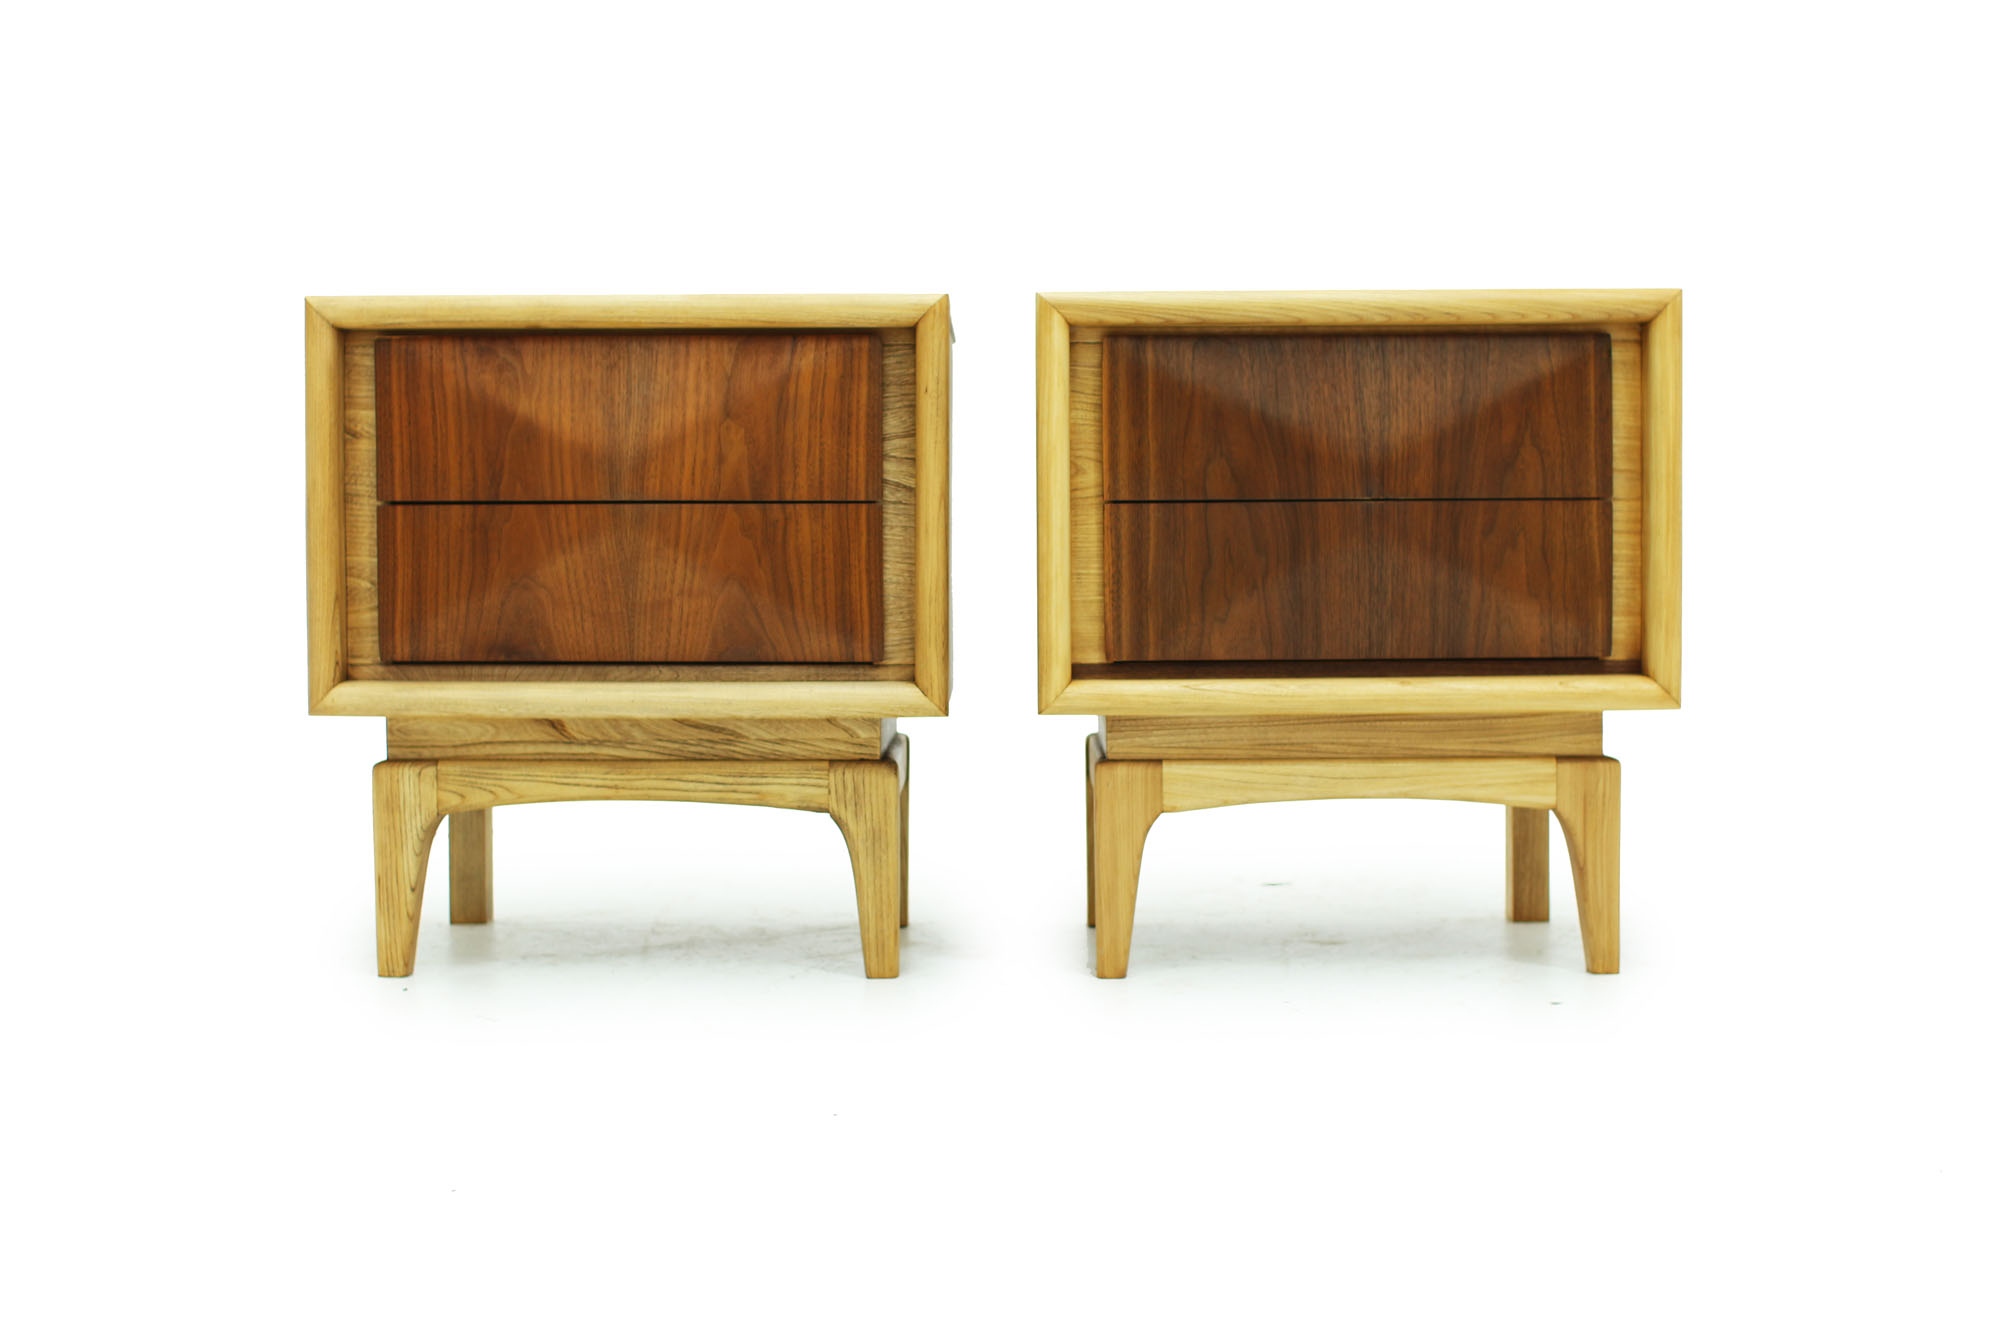 Pair of Walnut MCM Nightstands with diamond pattern drawers and two tone fronts fully refinished (2).jpg